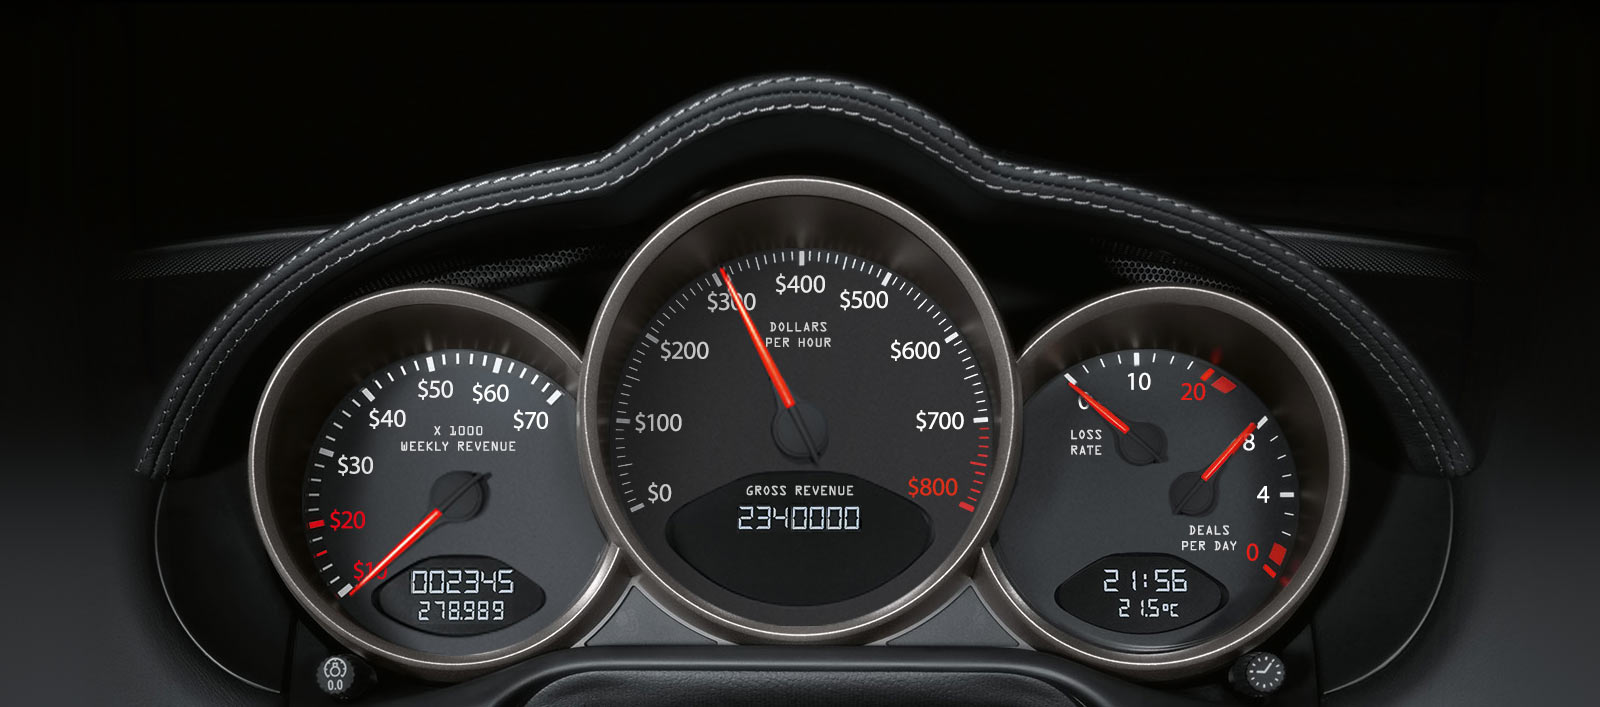 Dashboard Odometer